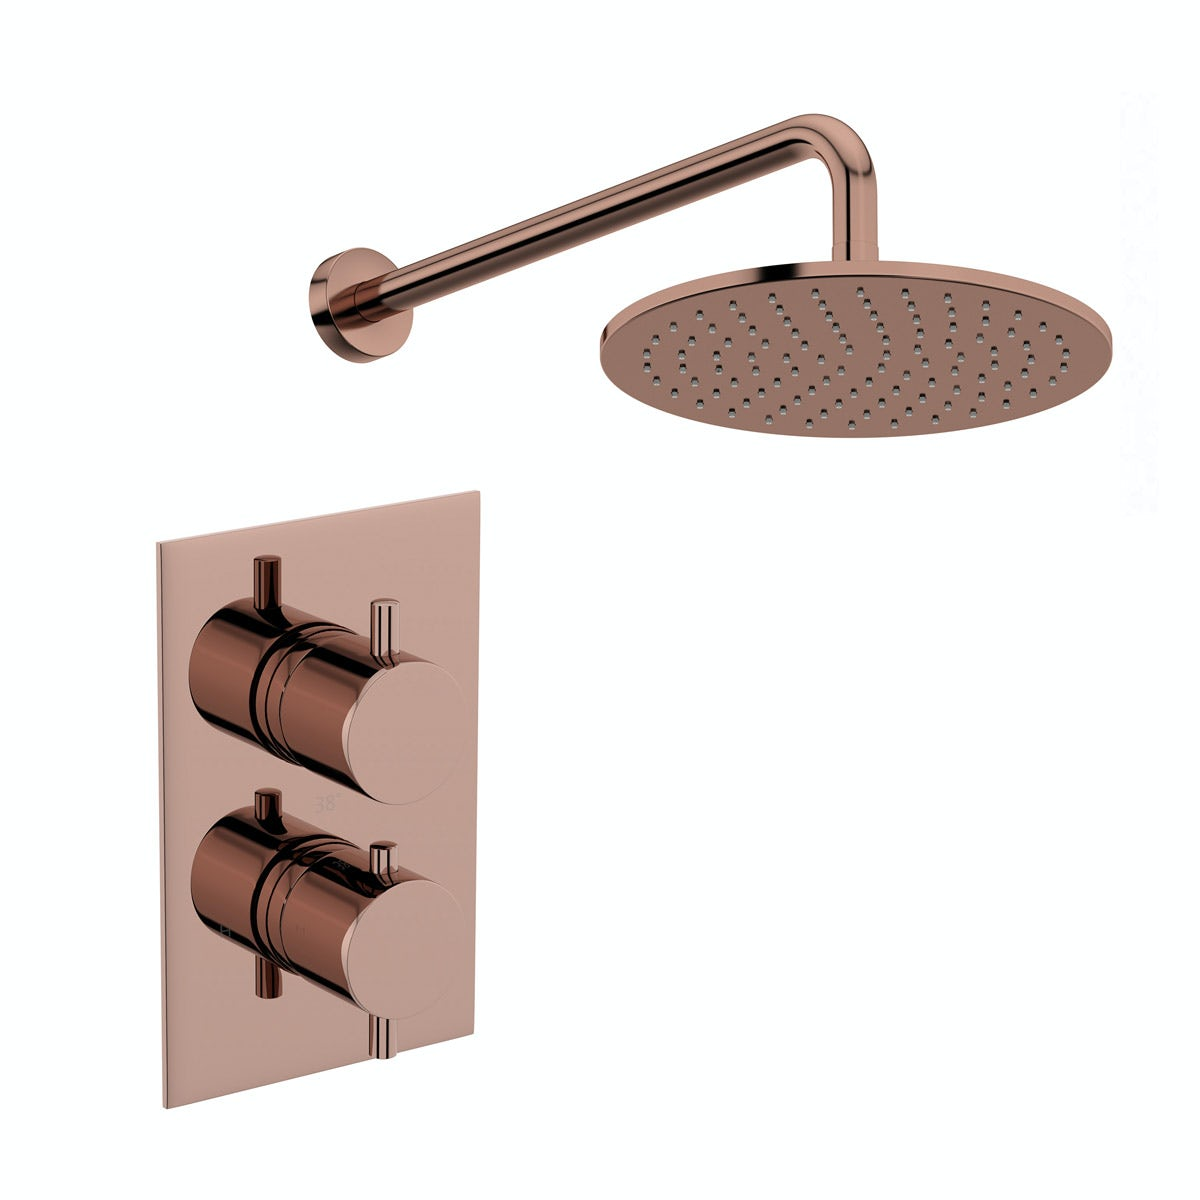 Mode Spencer round rose gold twin valve shower set